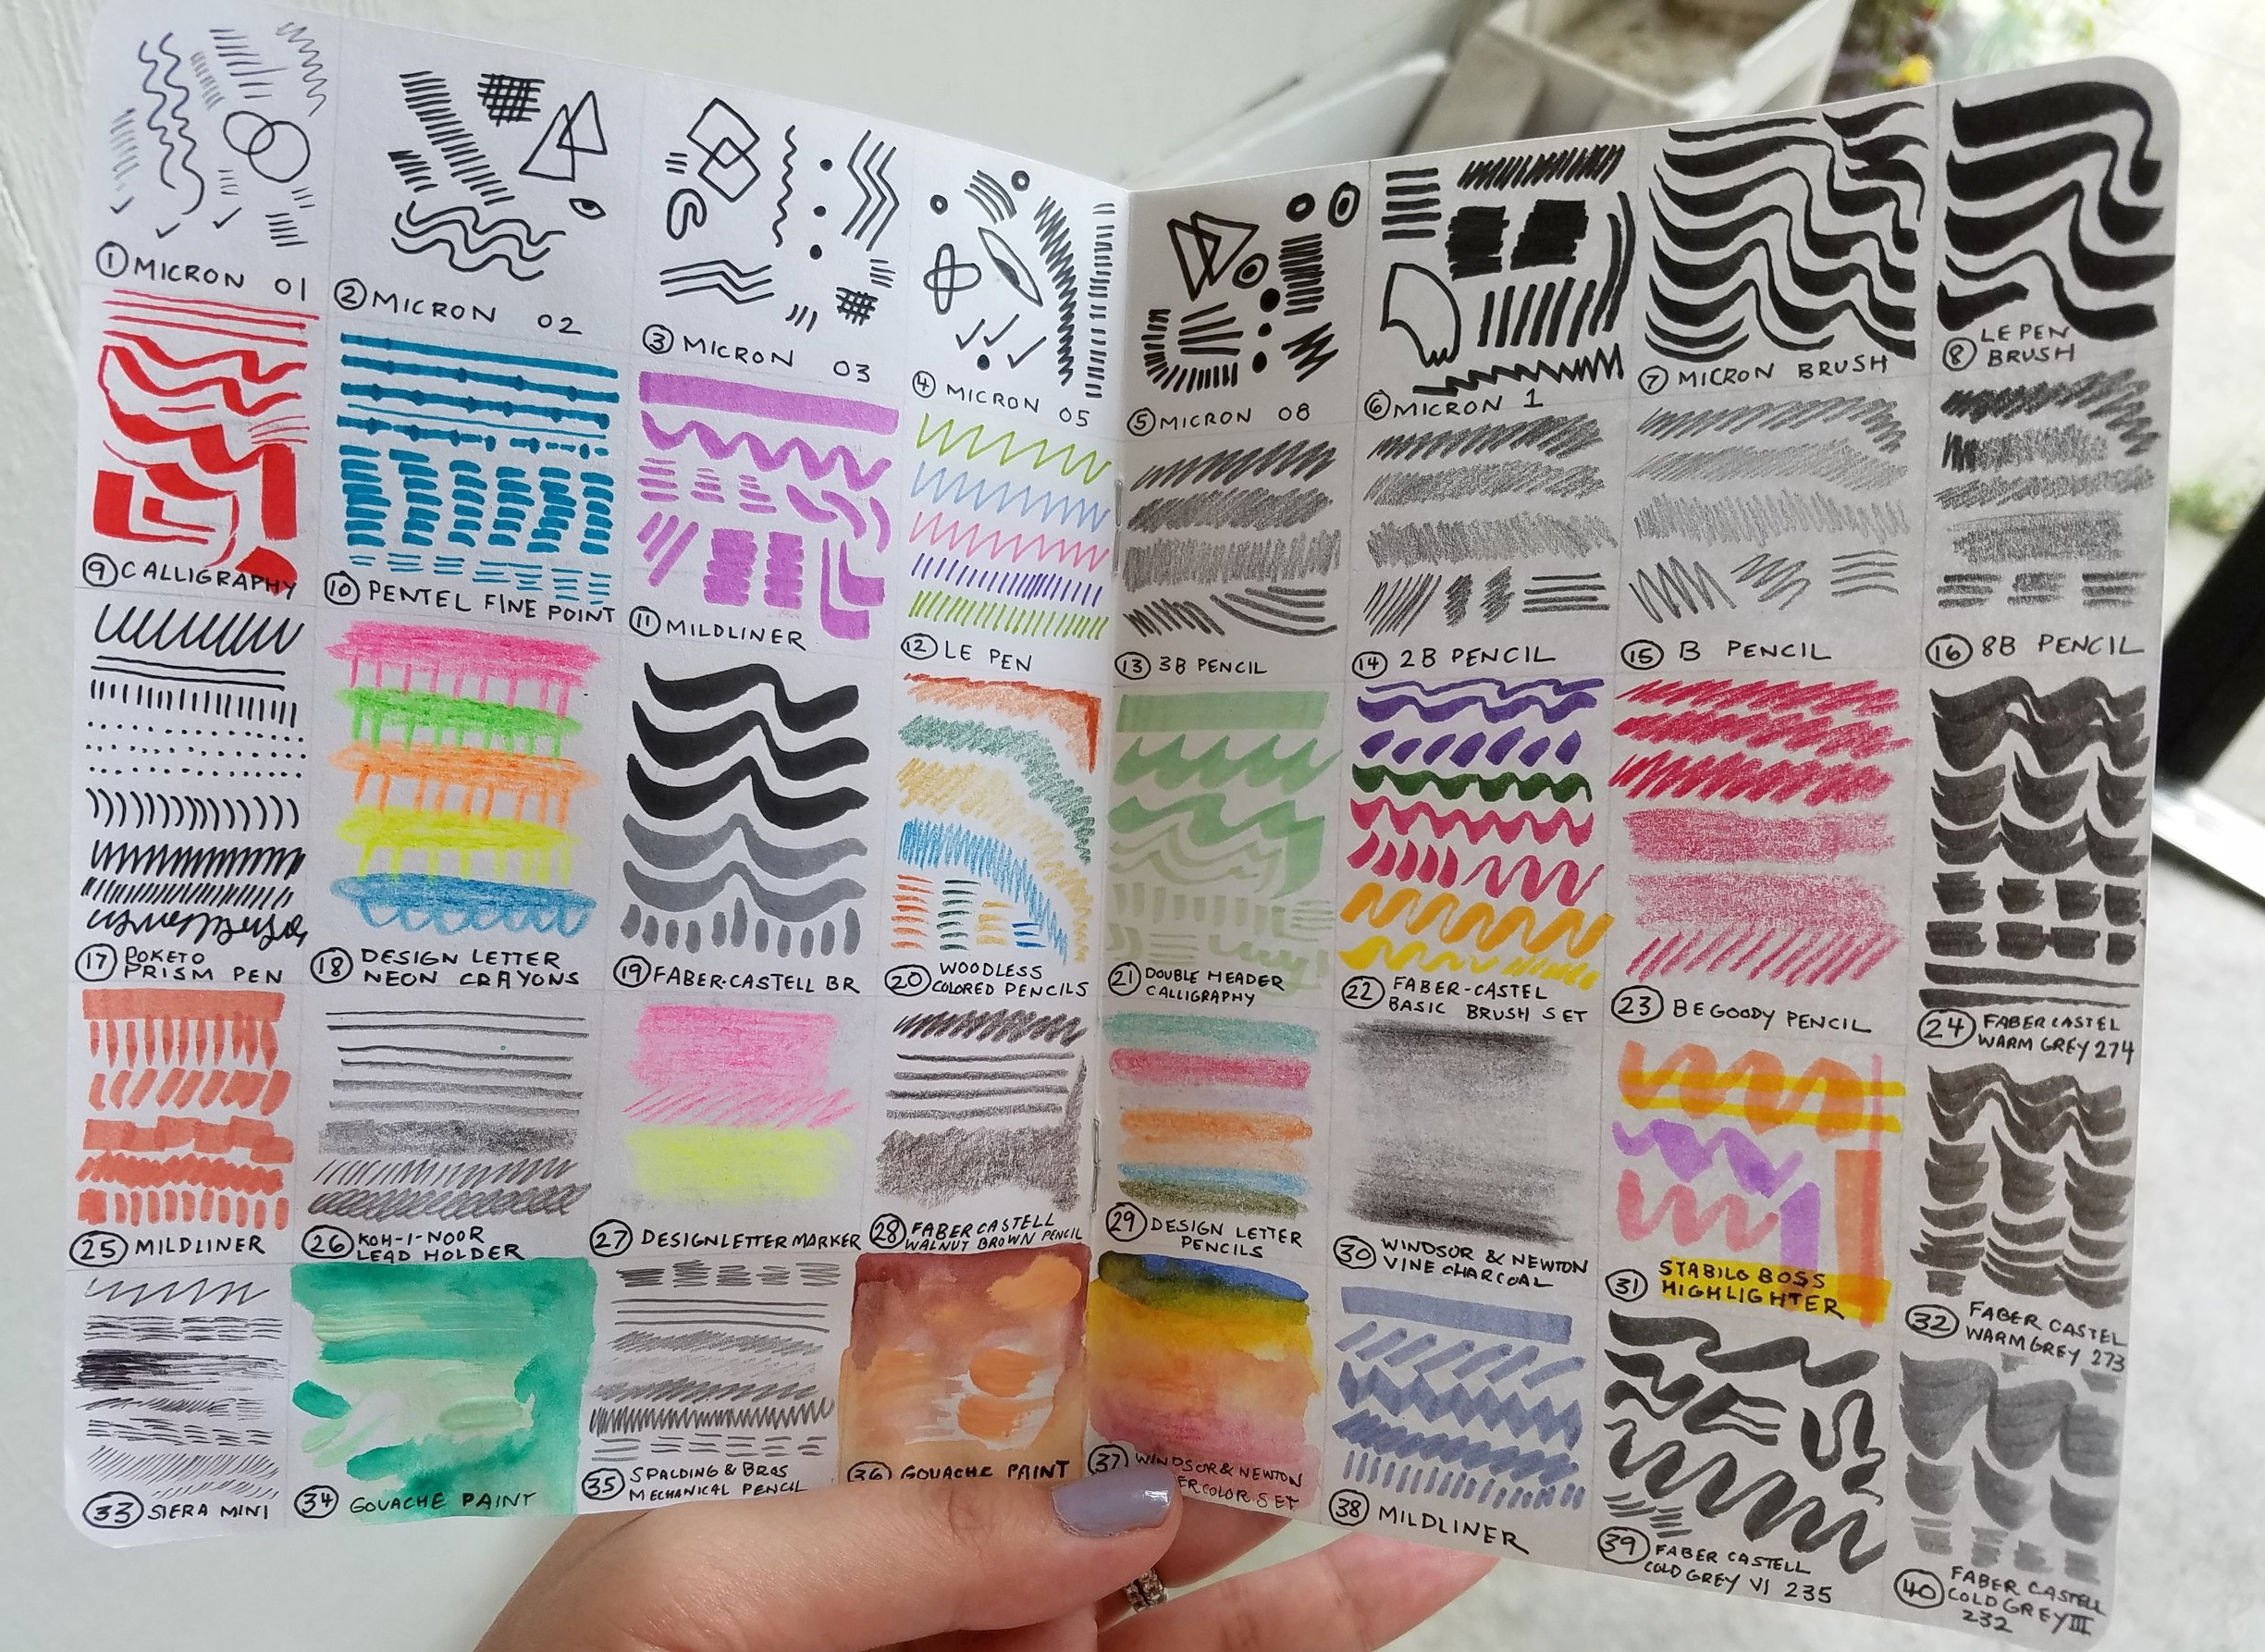 Various media and its effects on the pages of the Sketchbook